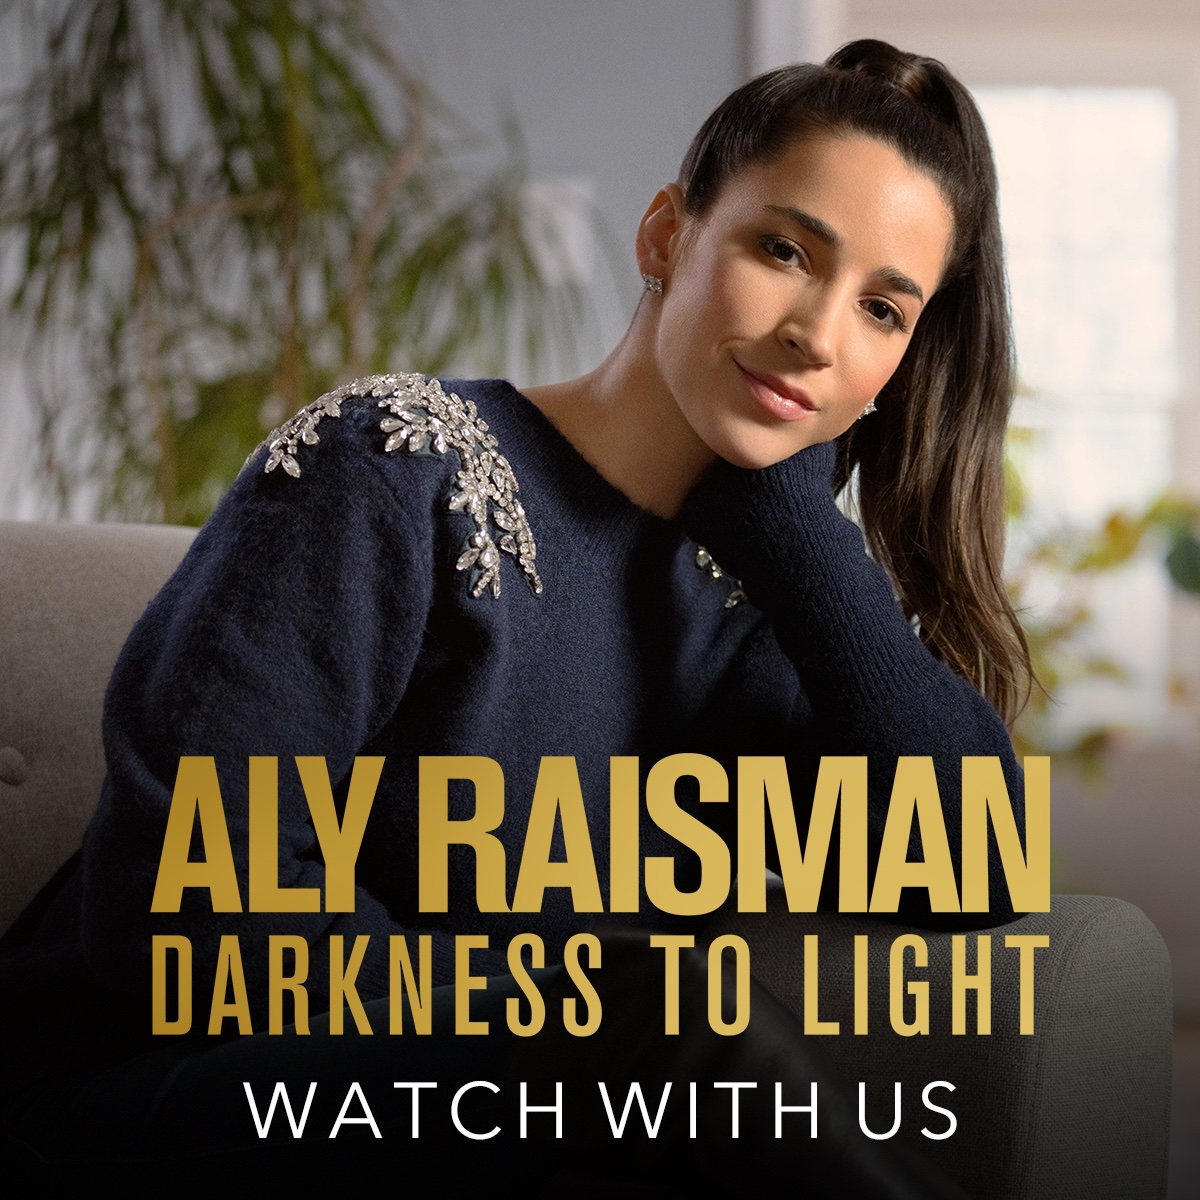 Premiering NOW!Our official Aly Raisman: Darkness to Light guide has information about the essential themes, questions to consider, & resources that may be useful after viewing.Visit the link to get the guide: https://t.co/vD21tUB3Be